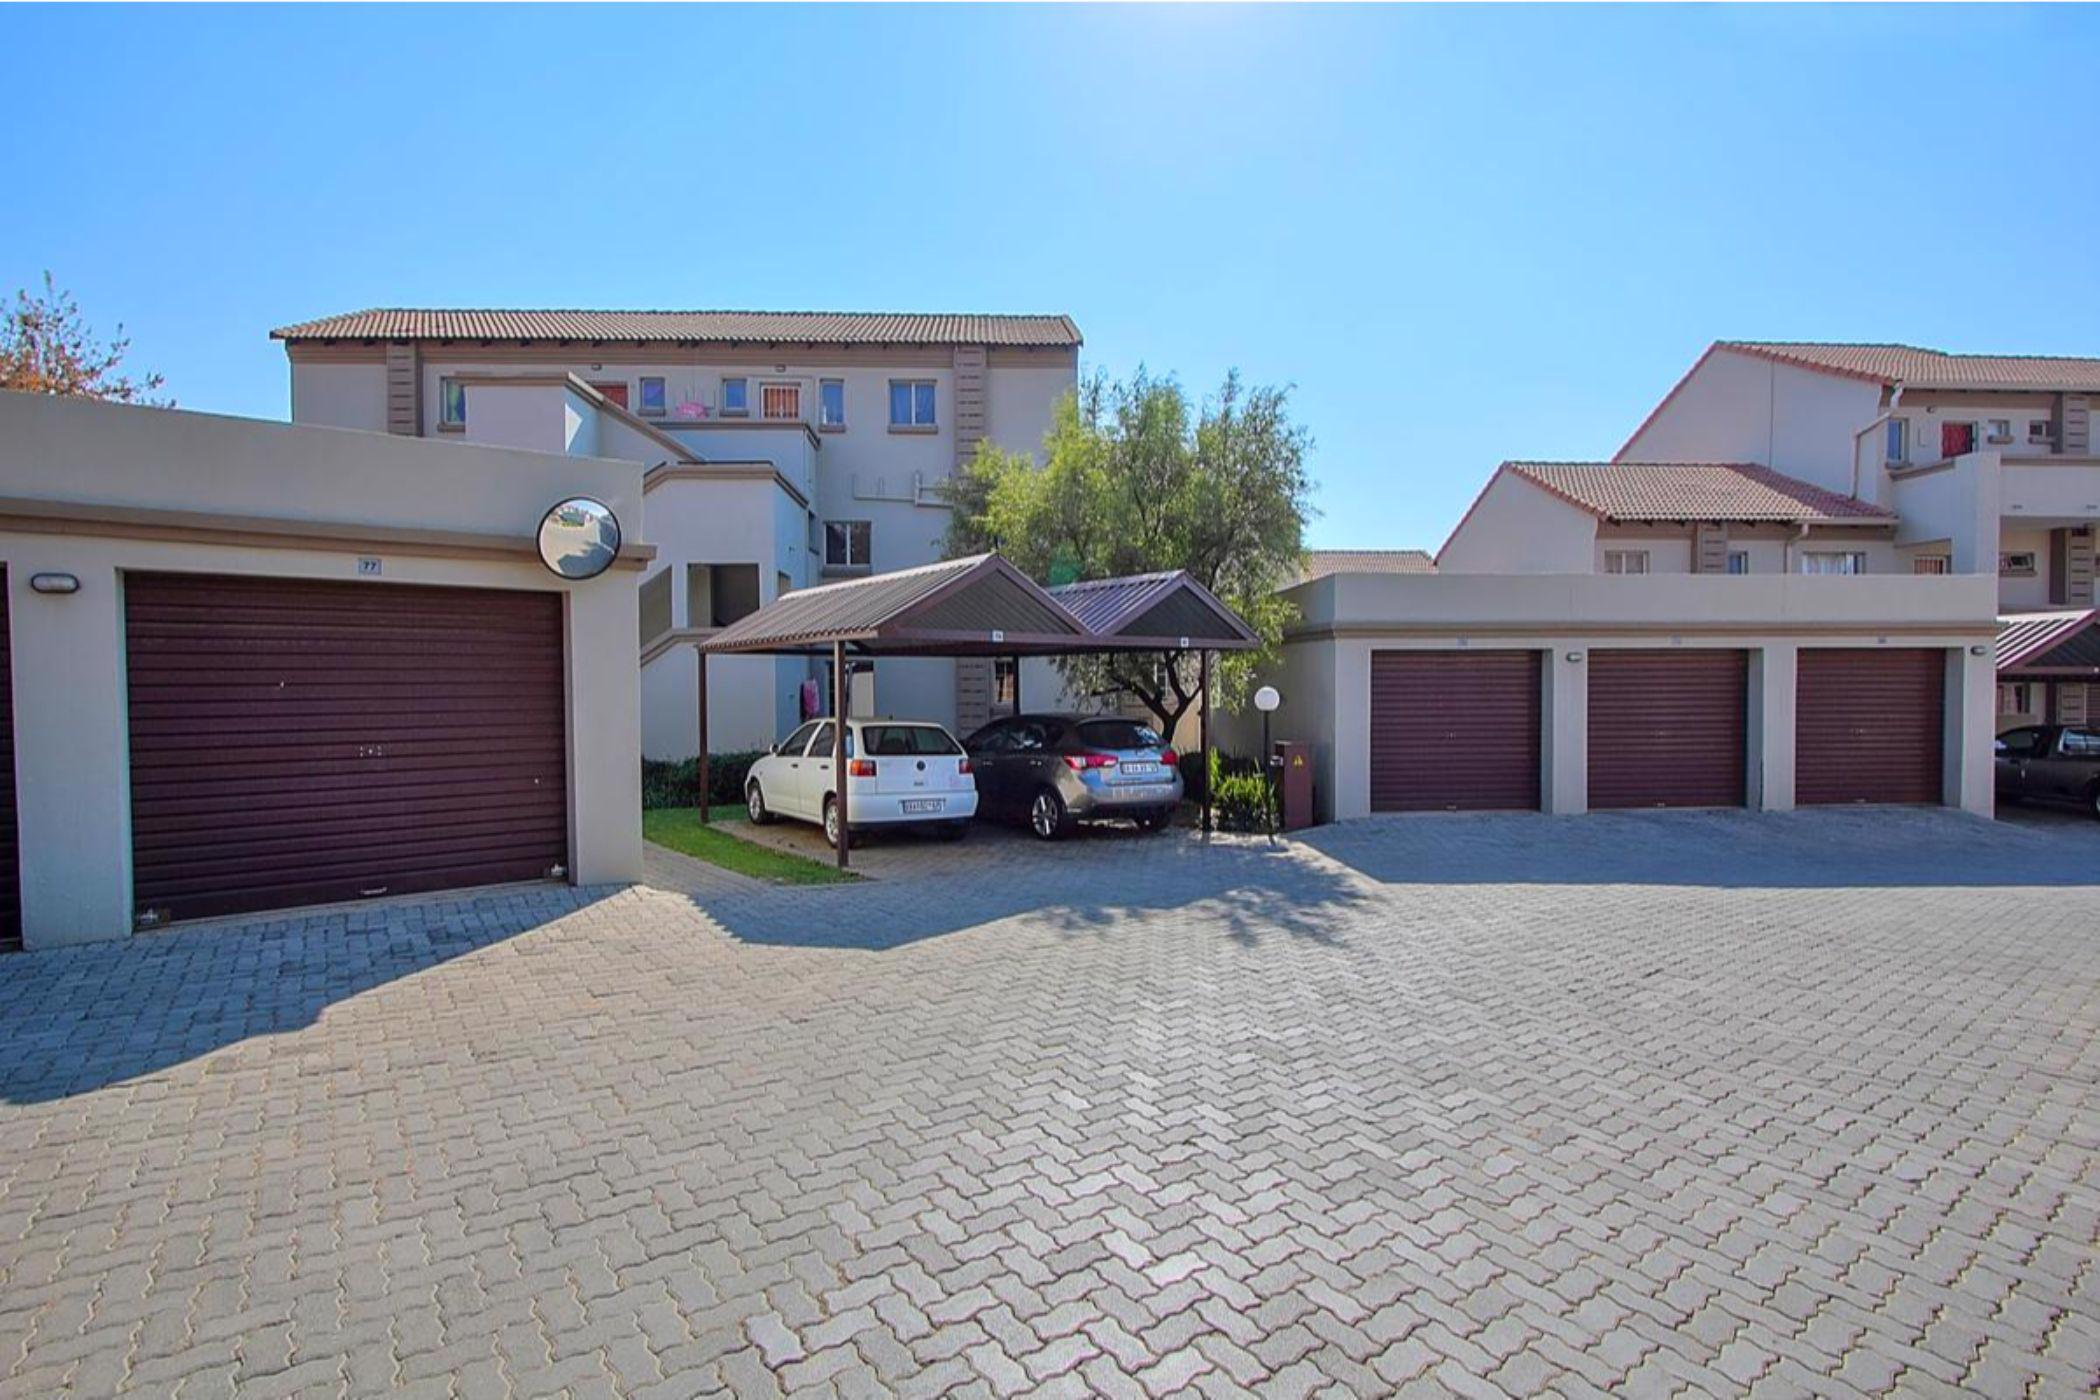 https://listing.pamgolding.co.za/images/properties/201906/1437412/H/1437412_H_14.jpg